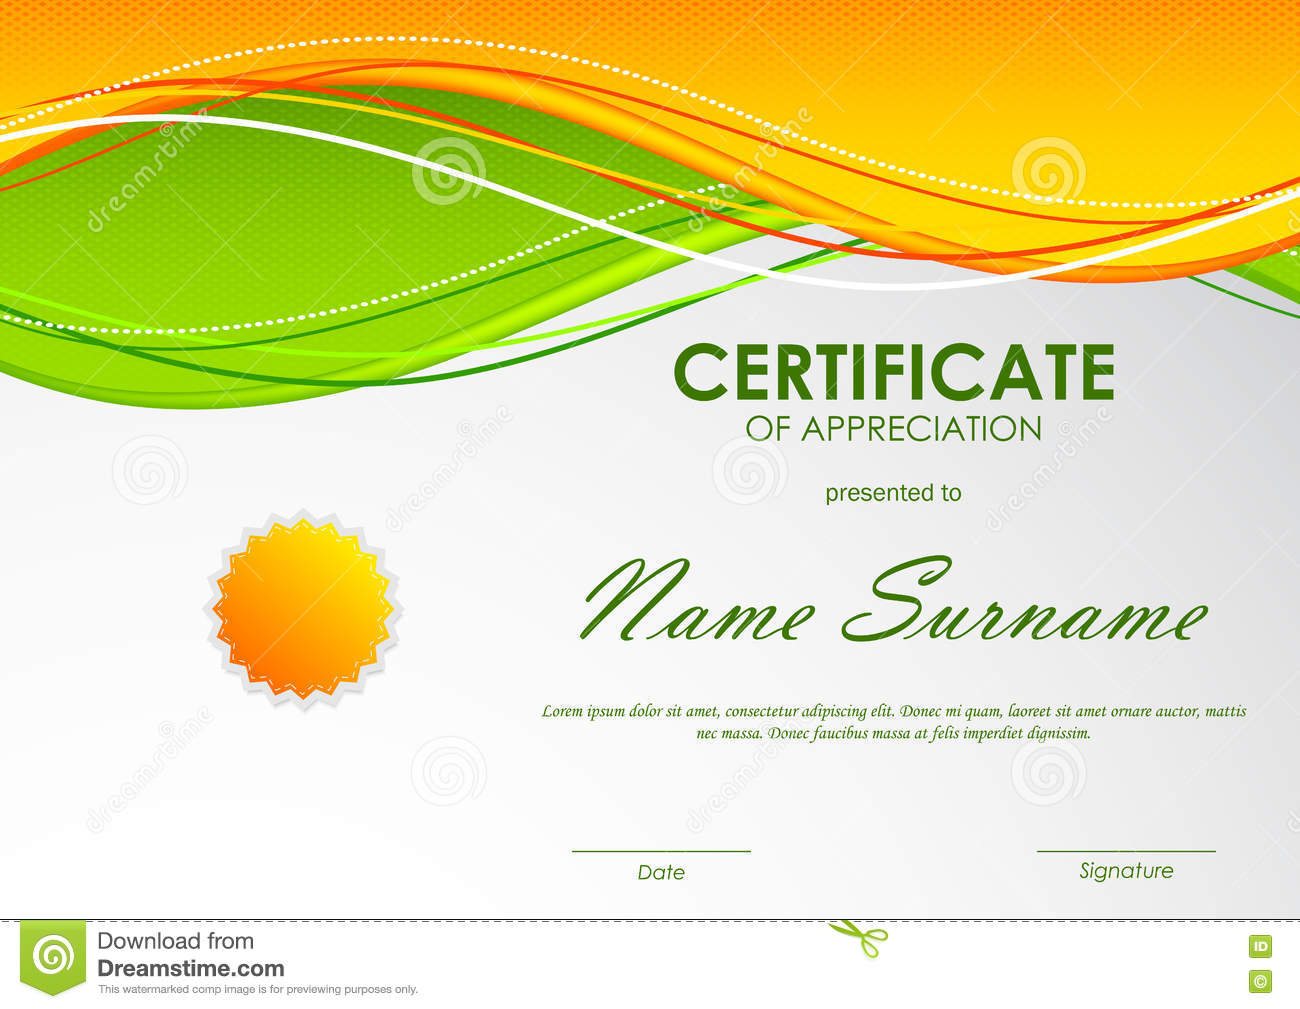 Printable certificate appreciation template nature theme green certificate of appreciation template free choice image templates certificate appreciation template orange wavy background seal vector yelopaper Images